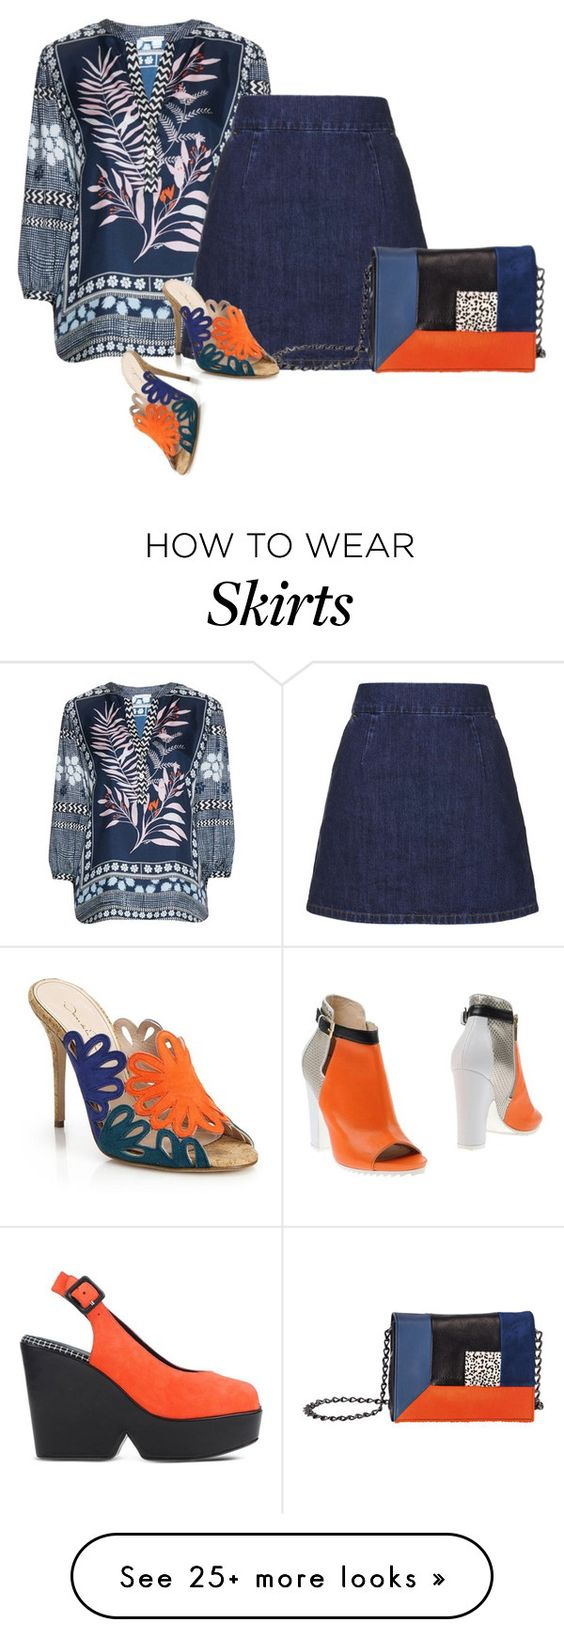 """skirt, top, shoes, bag"" by lovetodrinktea on Polyvore featuring Diane Von Furstenberg, Robert Clergerie, Arktè, Topshop, Longchamp, Oscar de la Renta, women's clothing, women's fashion, women and female"